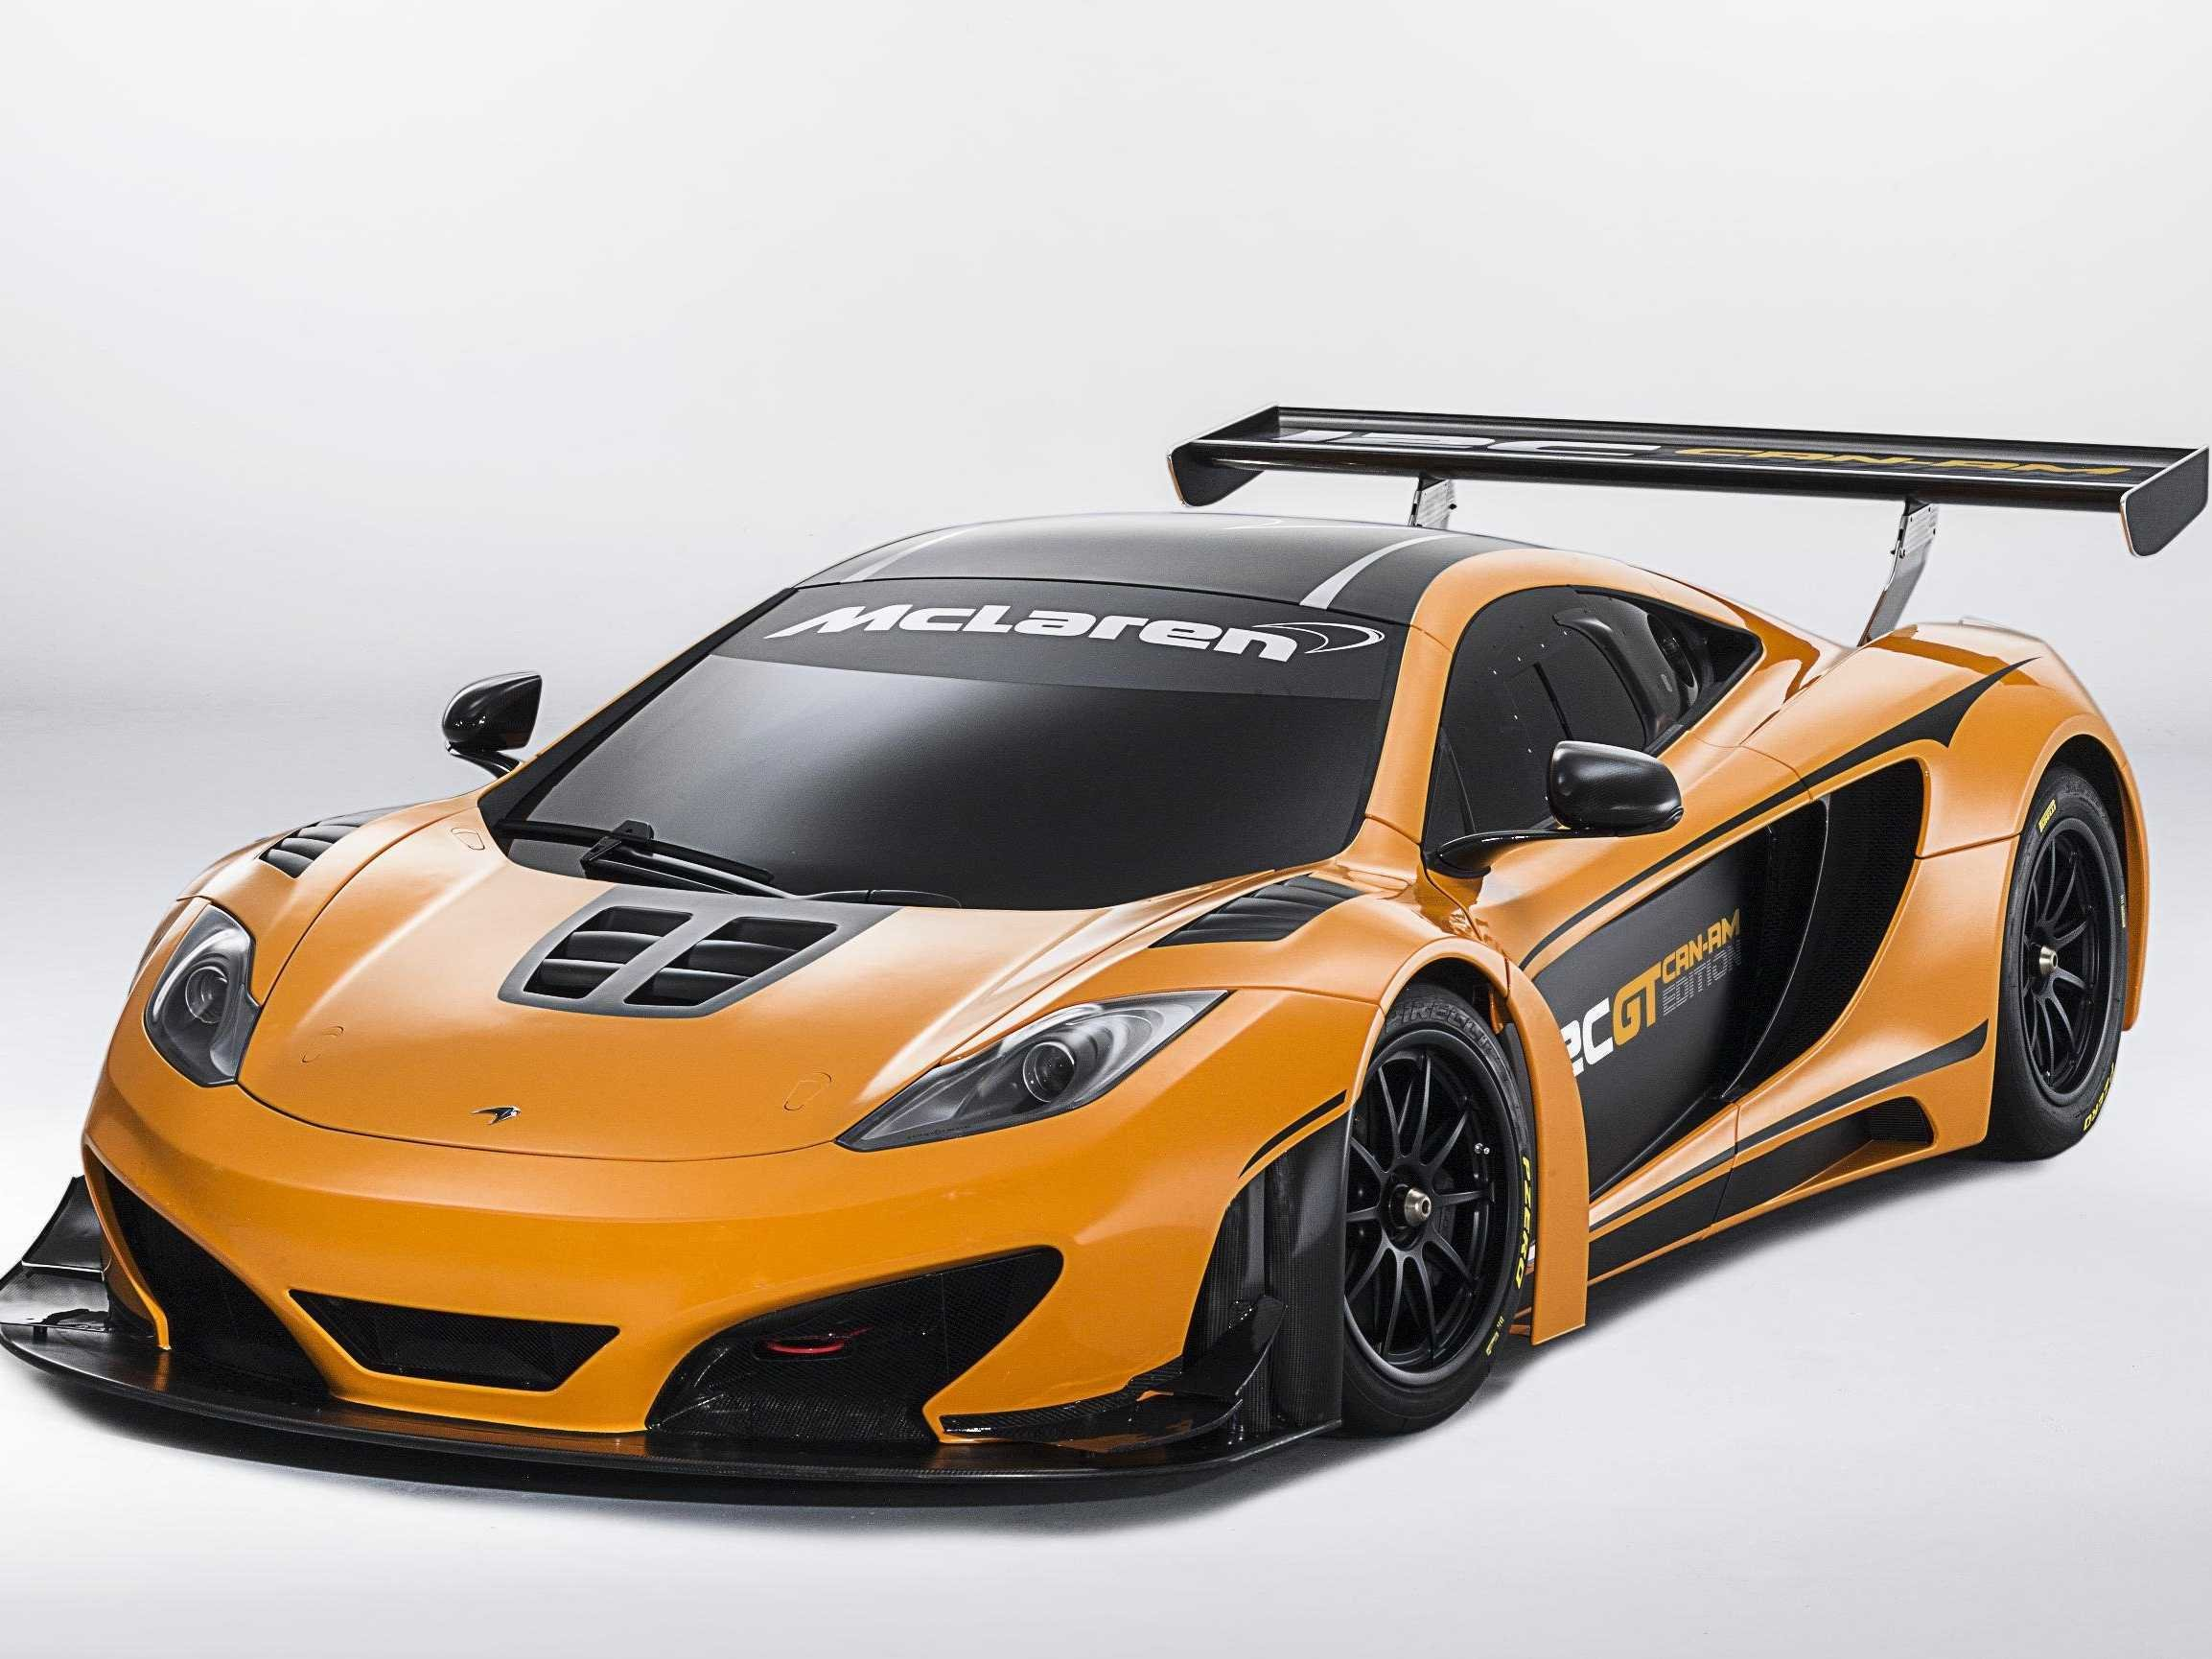 New Mclaren Is Building A 597 000 Track Car For Rich People On This Month